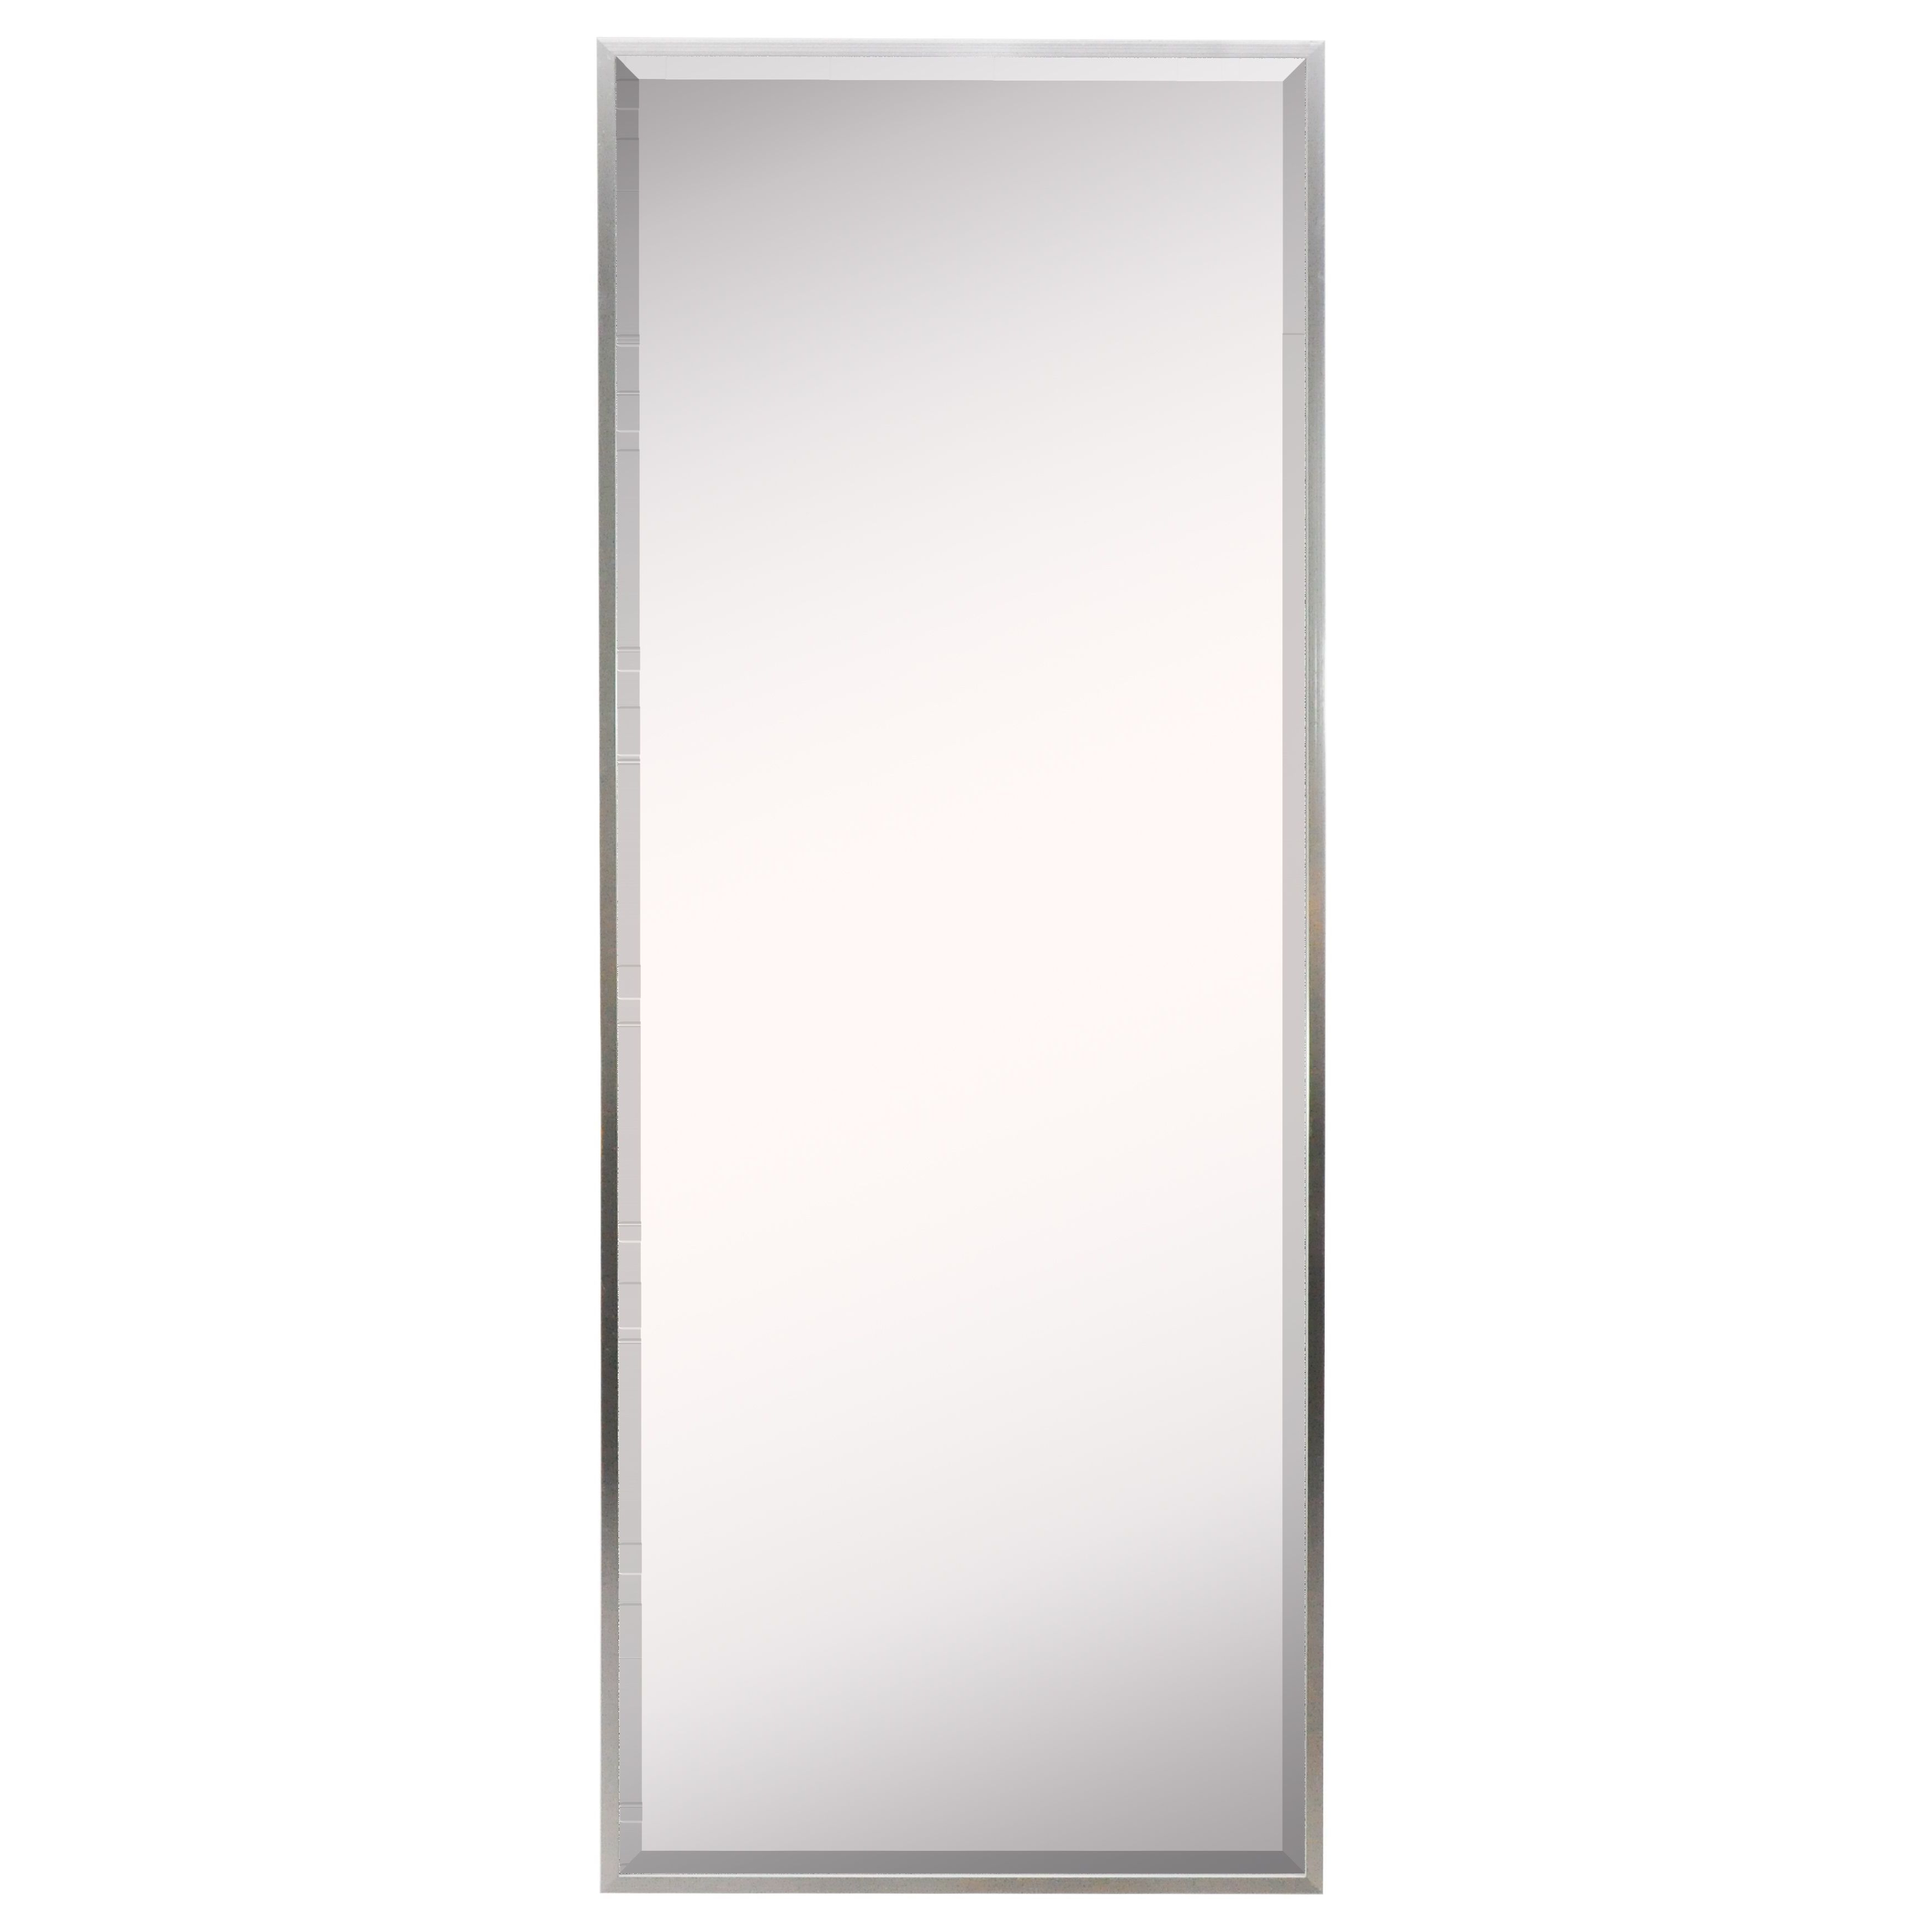 2020 American Made Accent Wall Mirrors With Regard To American Made Rayne Romeo Silver Sheen Wall Mirror (View 2 of 20)